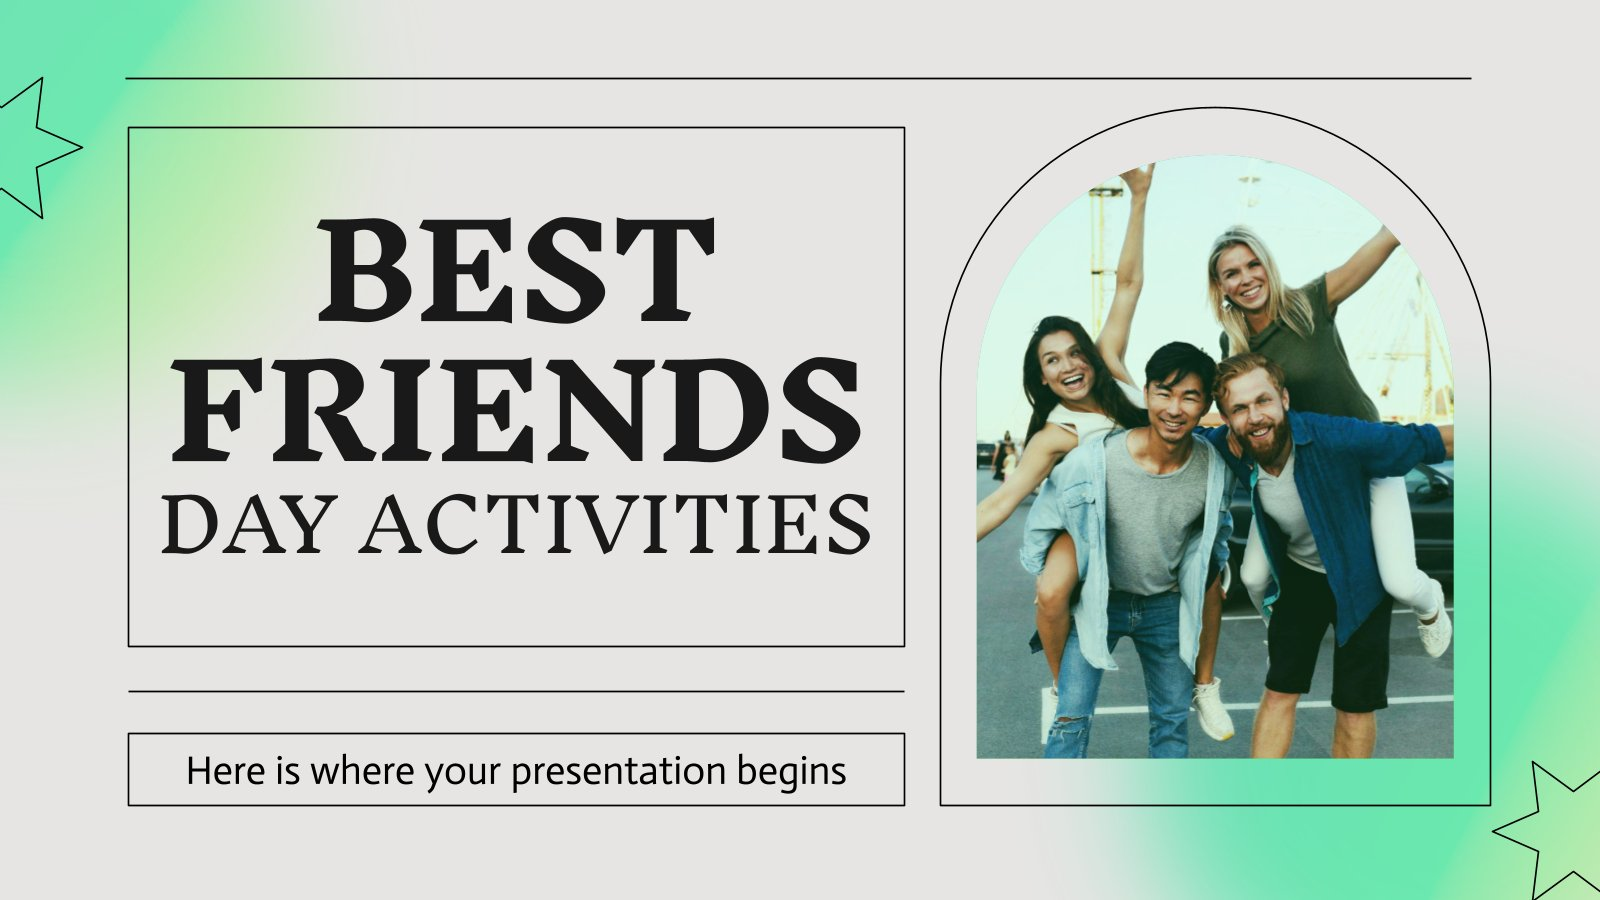 Best Friends Day Activities presentation template